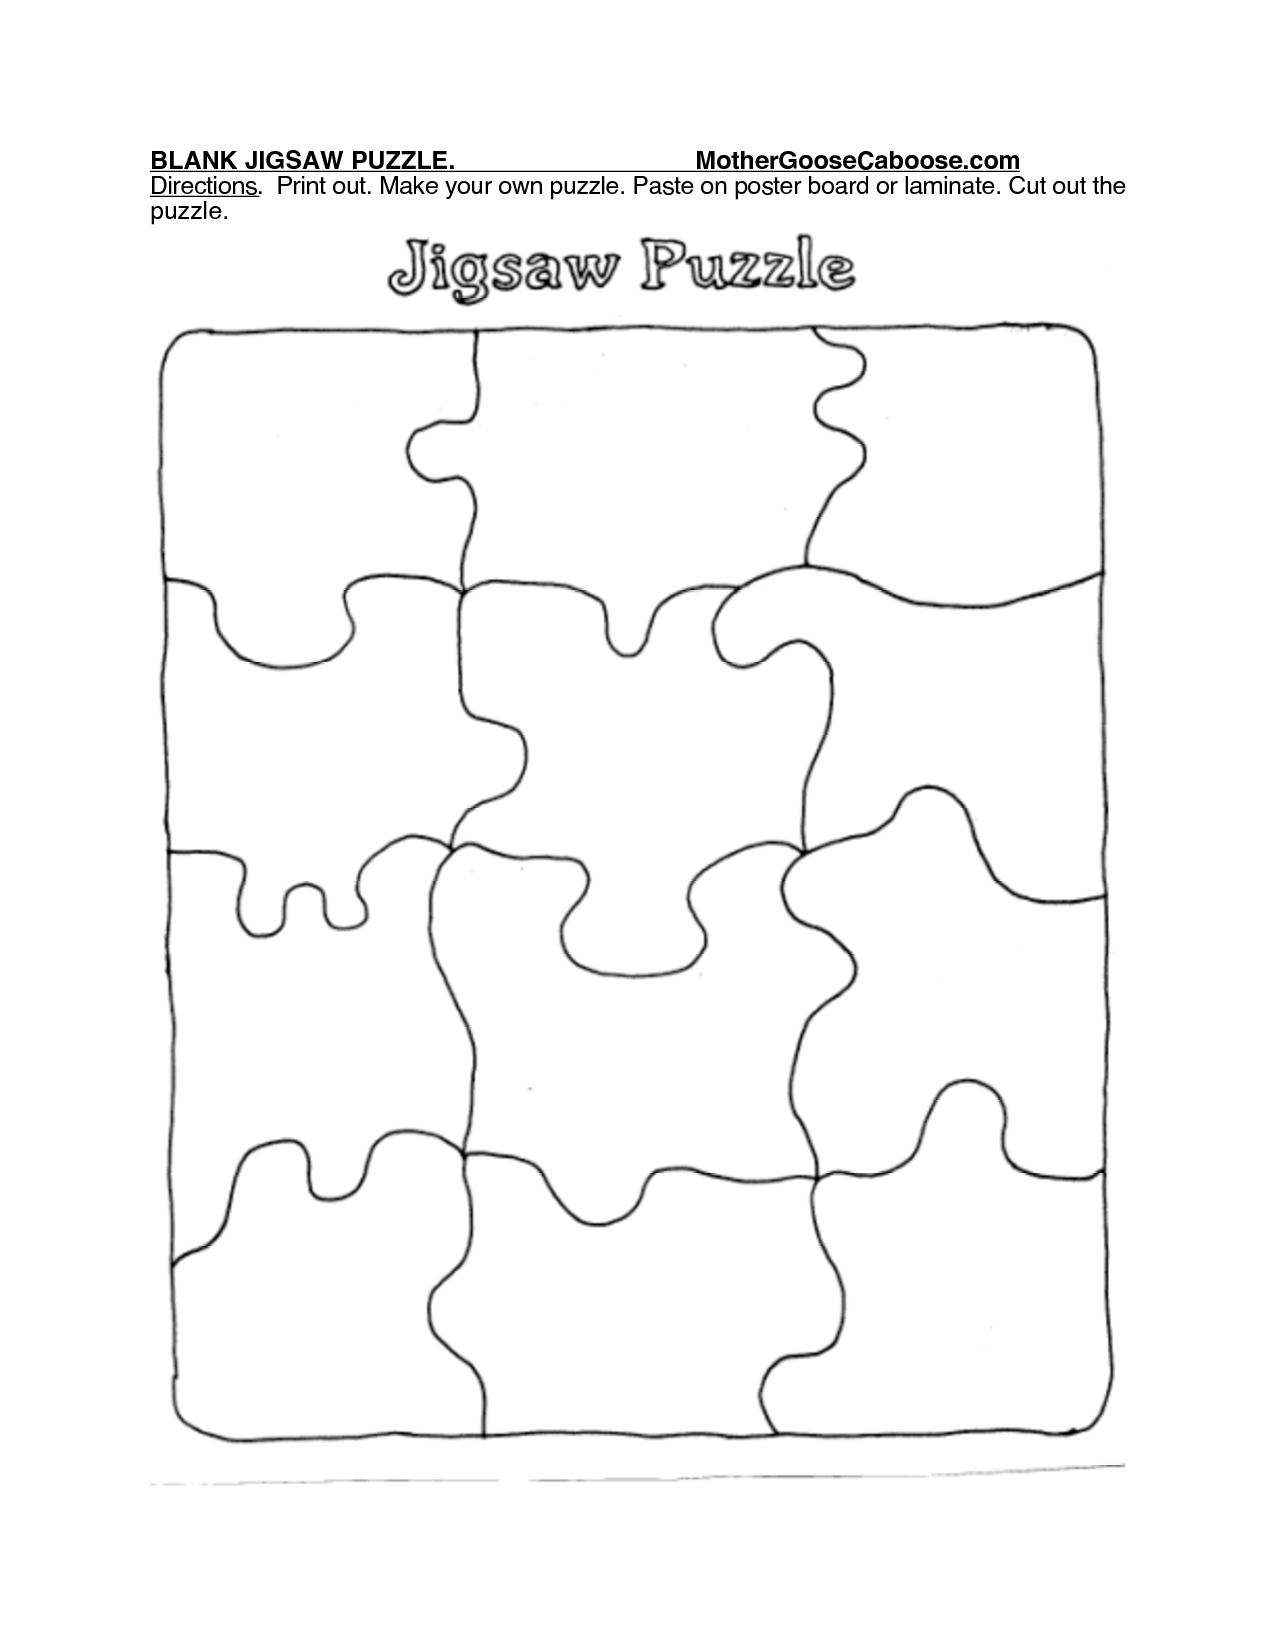 Blank Jigsaw Puzzle. Mothergoosecaboose Directions. Print Out - Puzzle Print Out